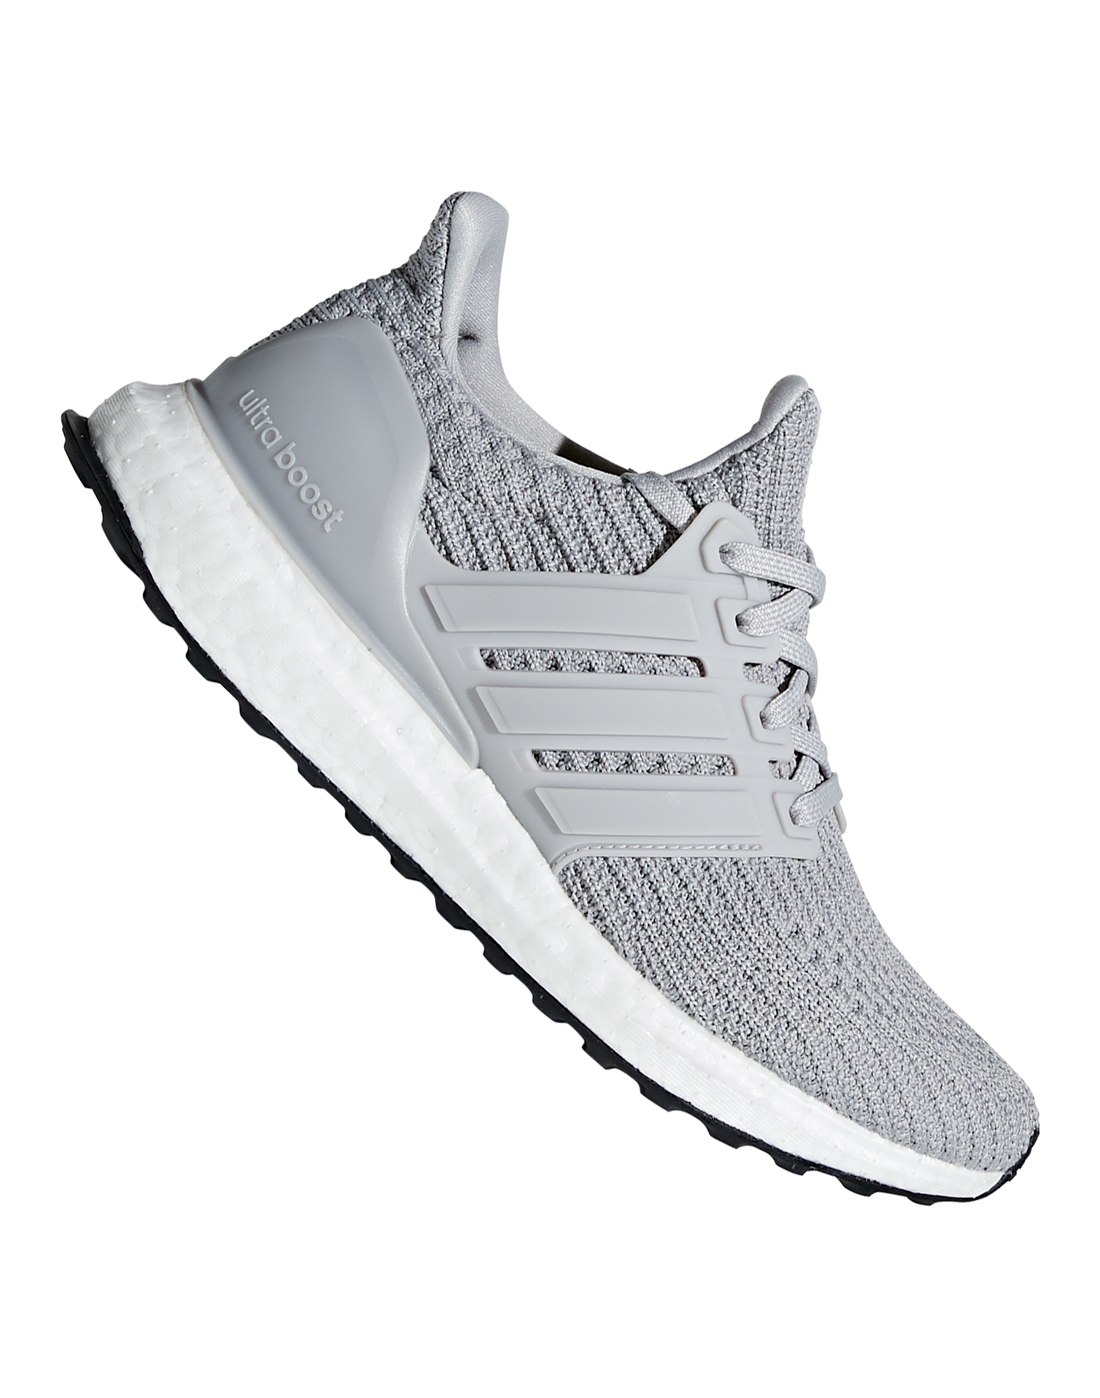 ca9209fd7abe Macys Adidas Shoes Mens Sneakers For Women Boots Adidas Adilette ...